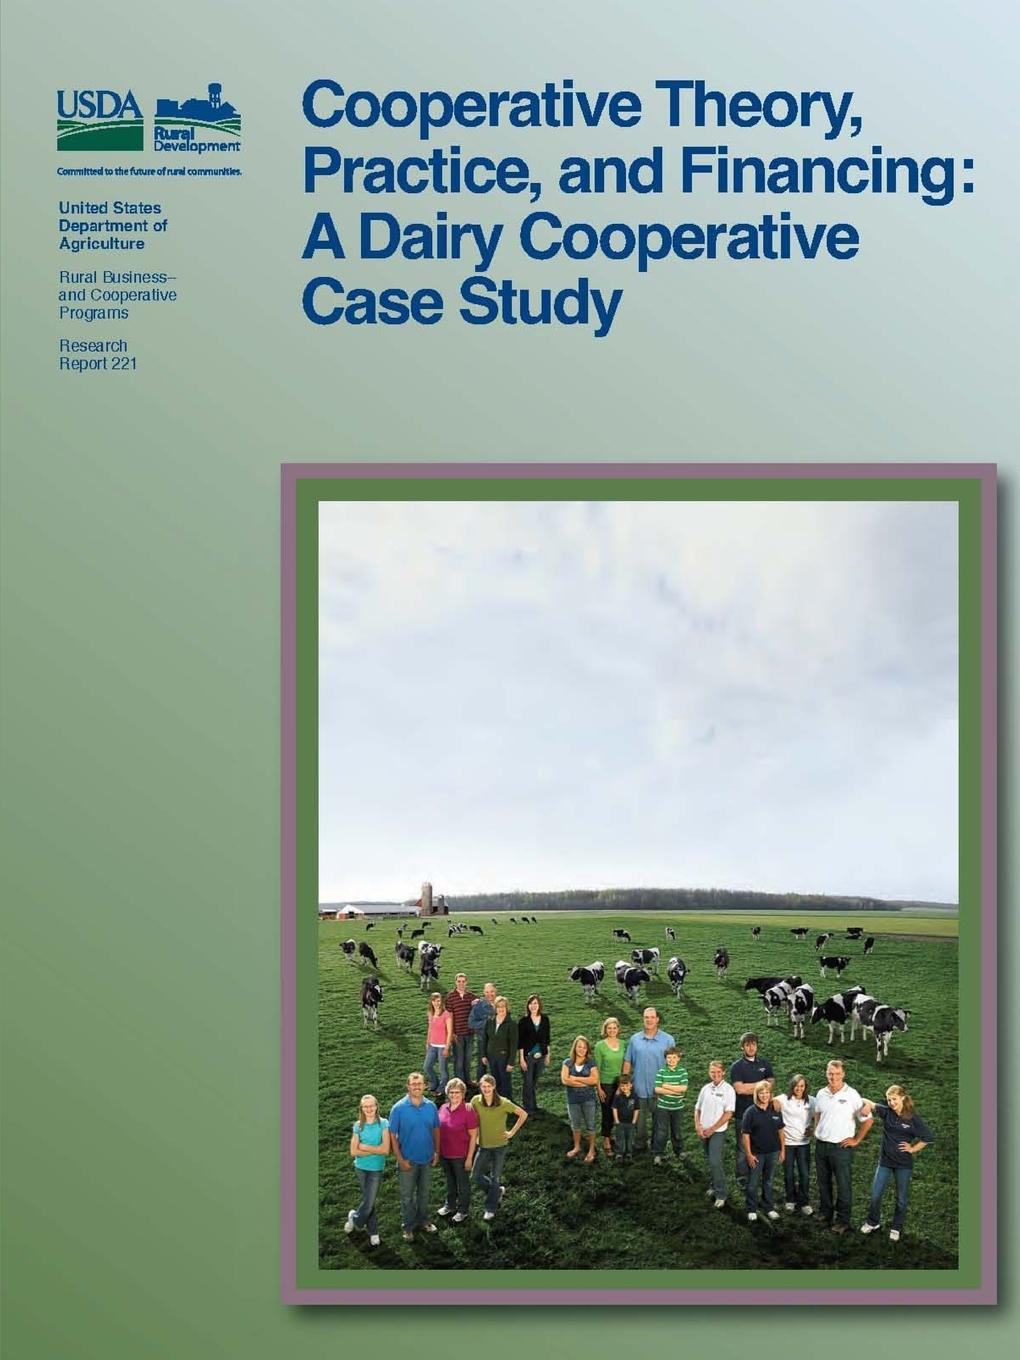 United States Department of Agriculture Cooperative Theory, Practice, and Financing. A Dairy Cooperative Case Study abera gebru practices of cooperative principles in shebedino district ethiopia